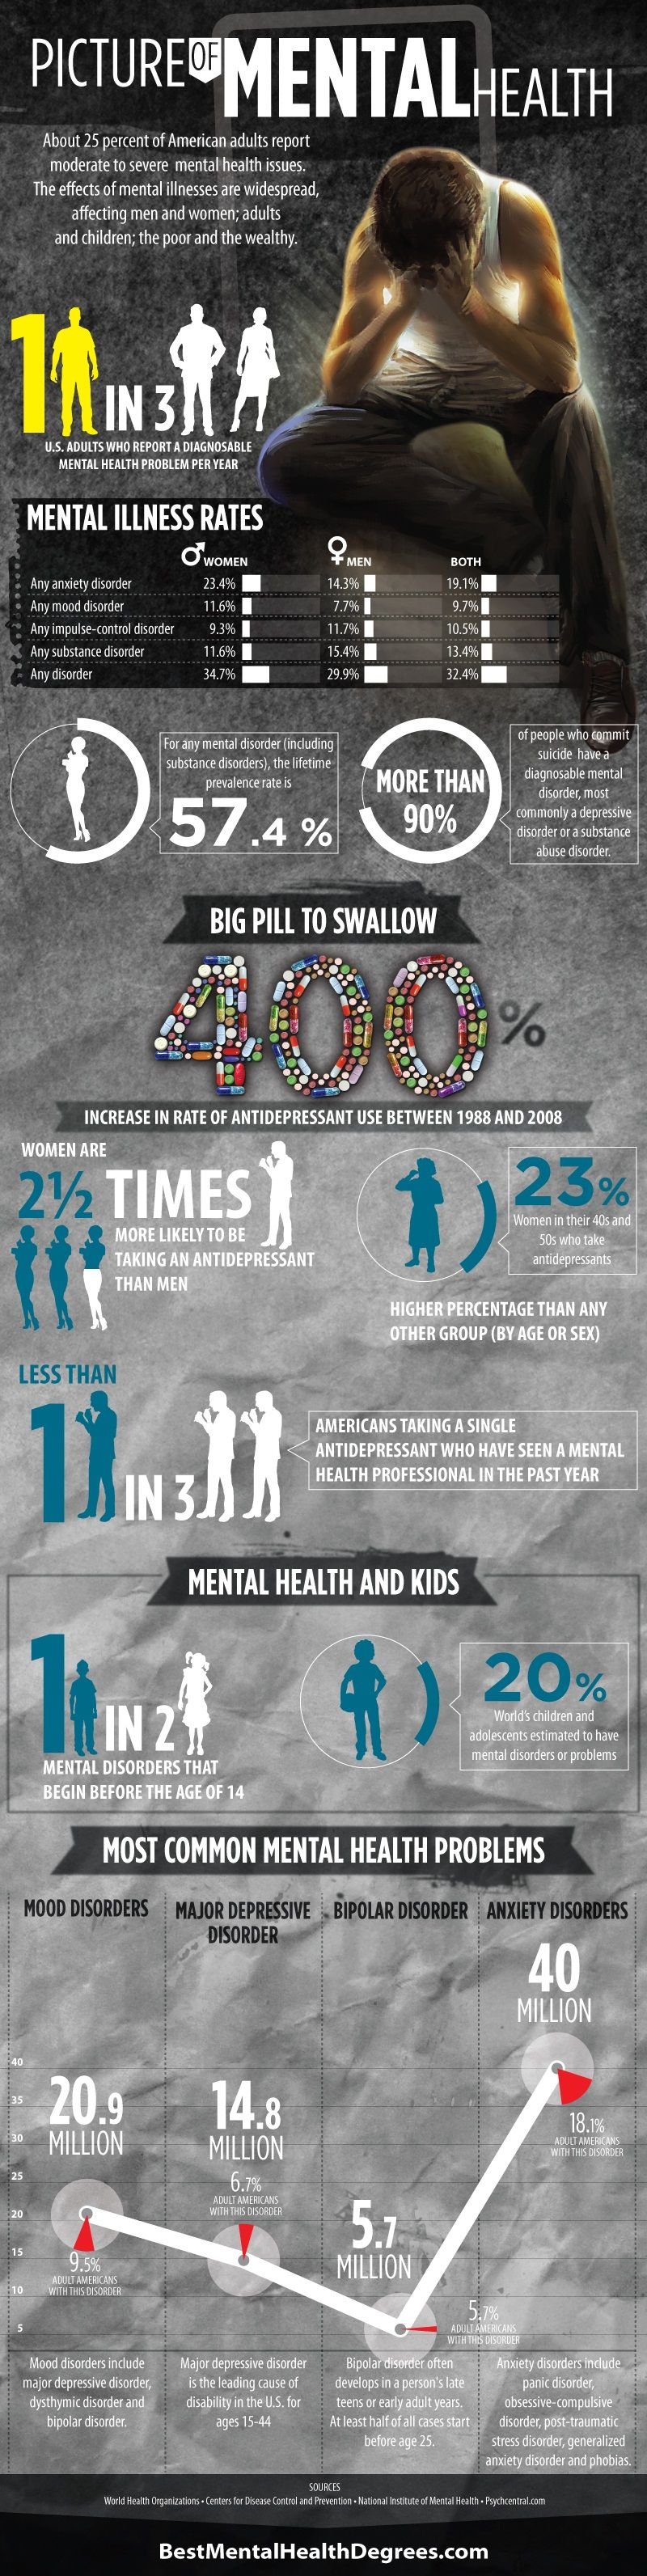 INFOGRAPHIC: Picture of Mental Health